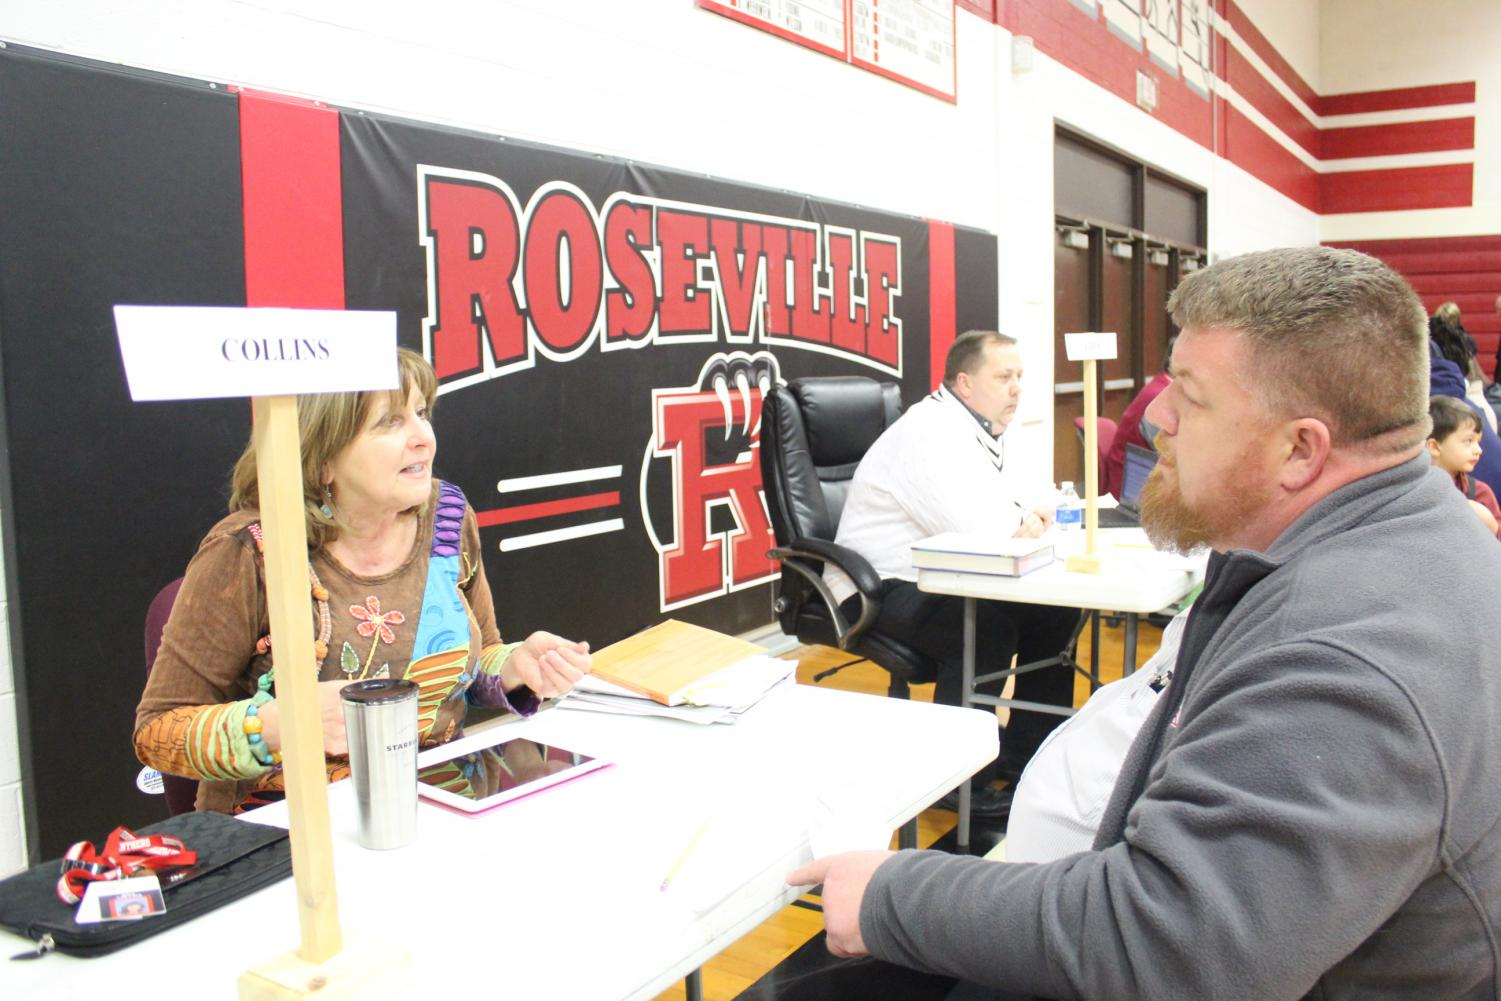 Music teacher Kristina Collins talks to a parent.